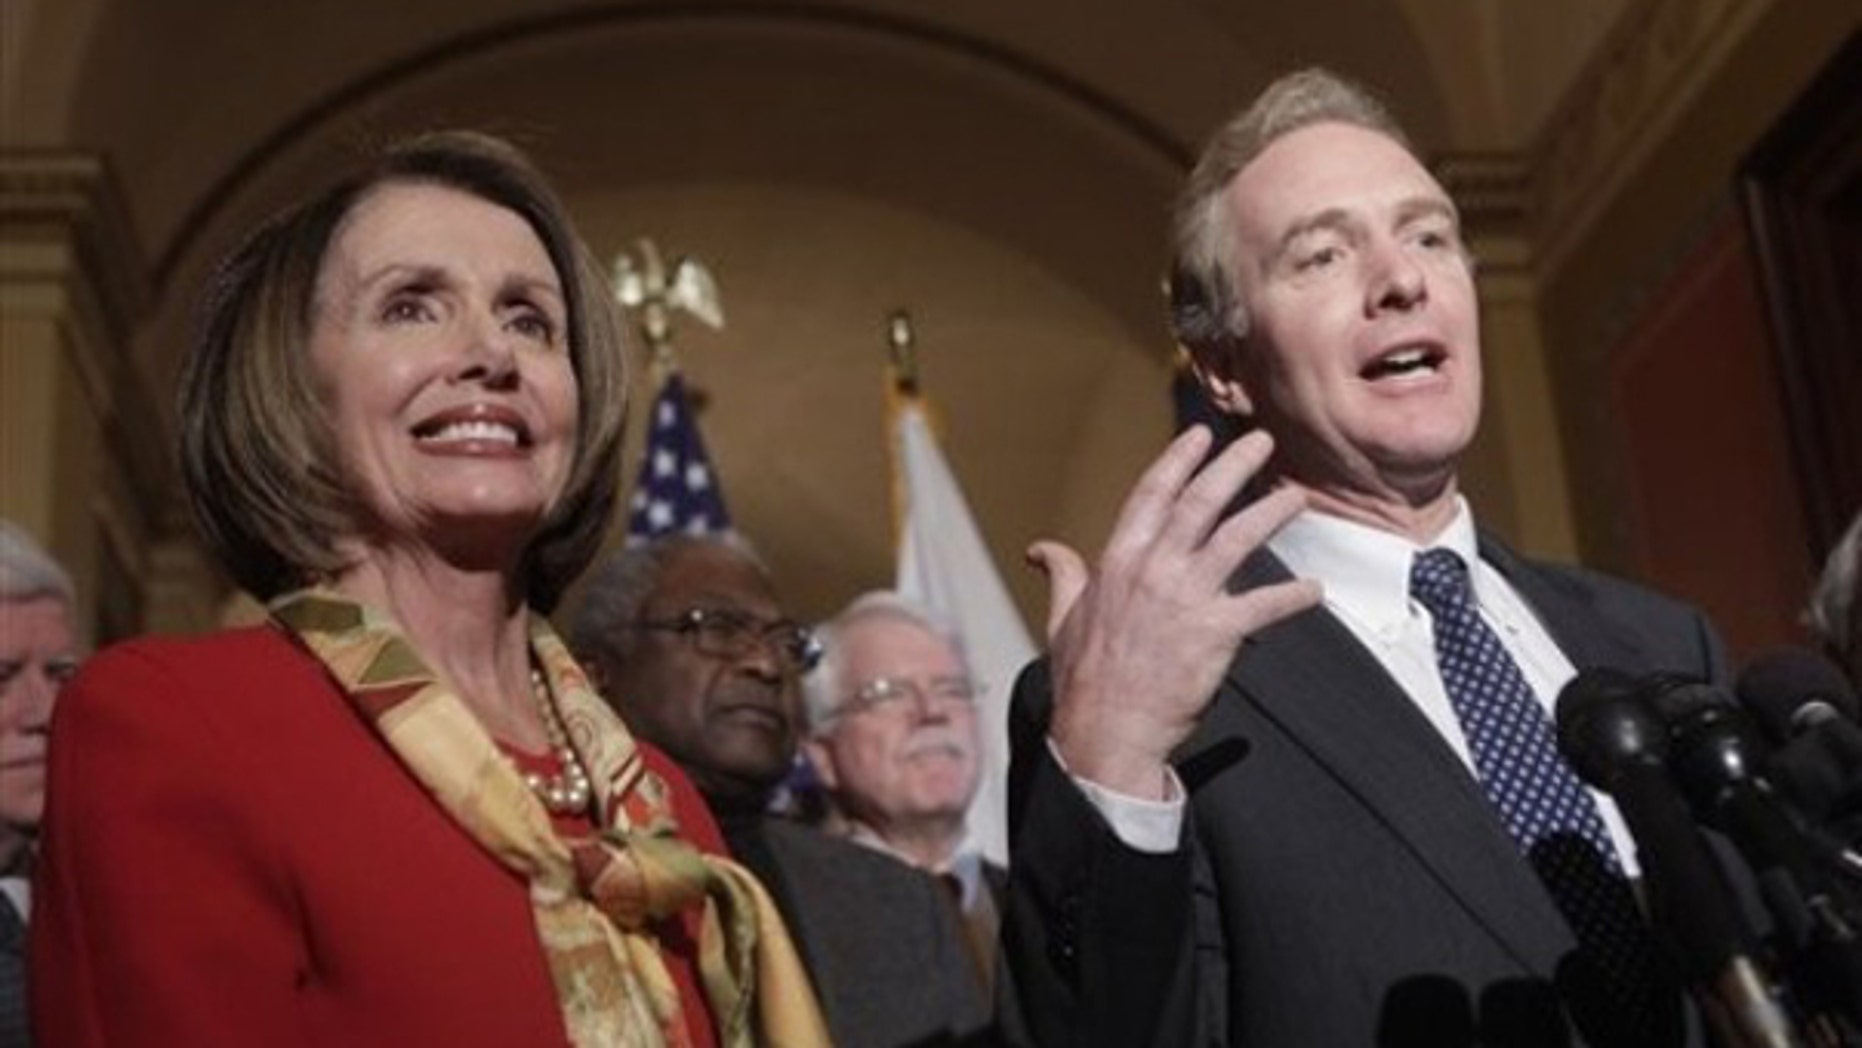 Jan. 5: Rep. Chris Van Hollen and House Speaker Nancy Pelosi speak at a news conference to discuss health care legislation. (AP Photo)